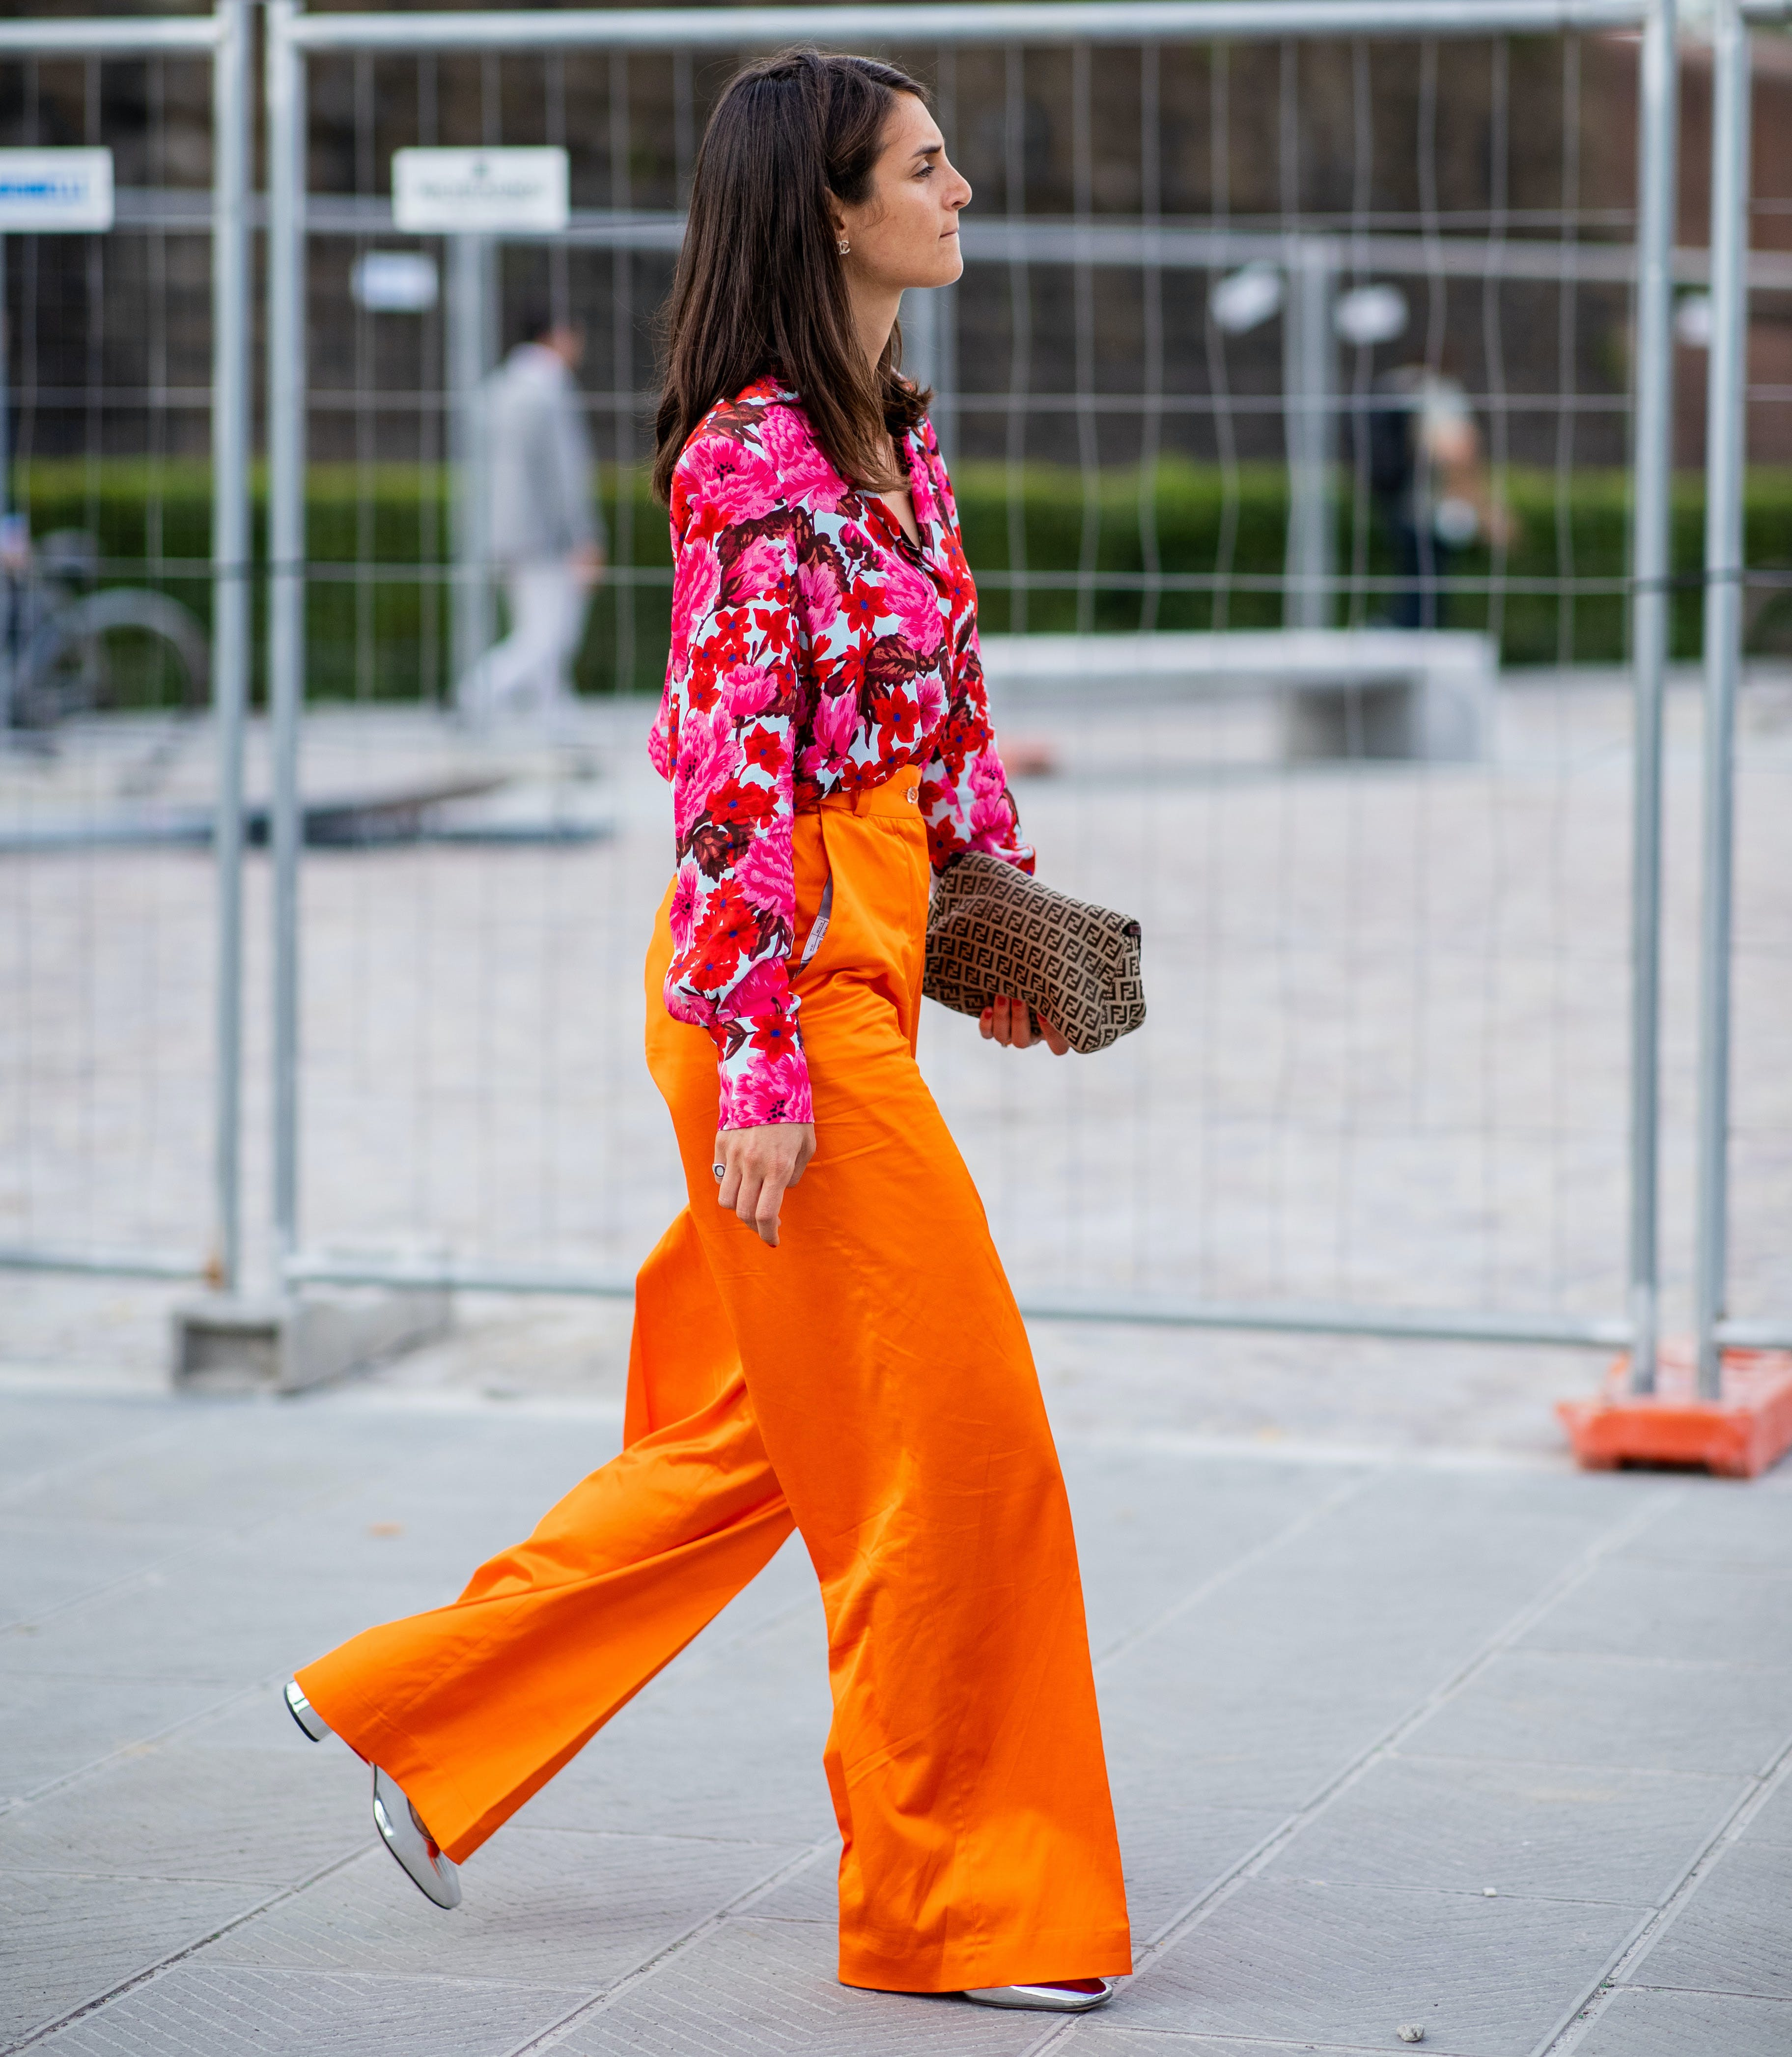 a woman wearing very bright colors